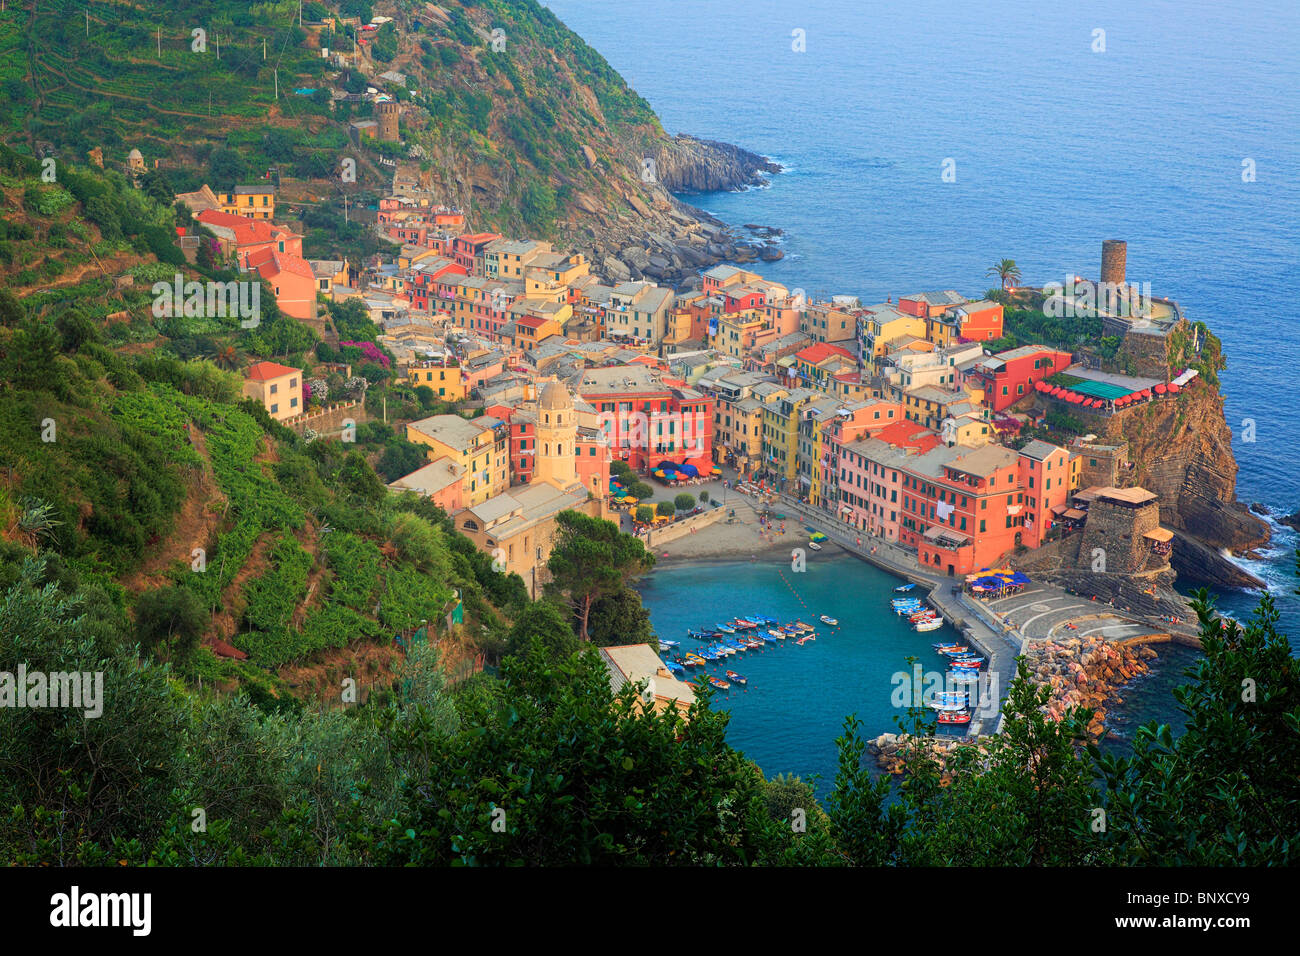 Late afternoon in Vernazza, a small town in Italy's Cinque Terre National Park. - Stock Image